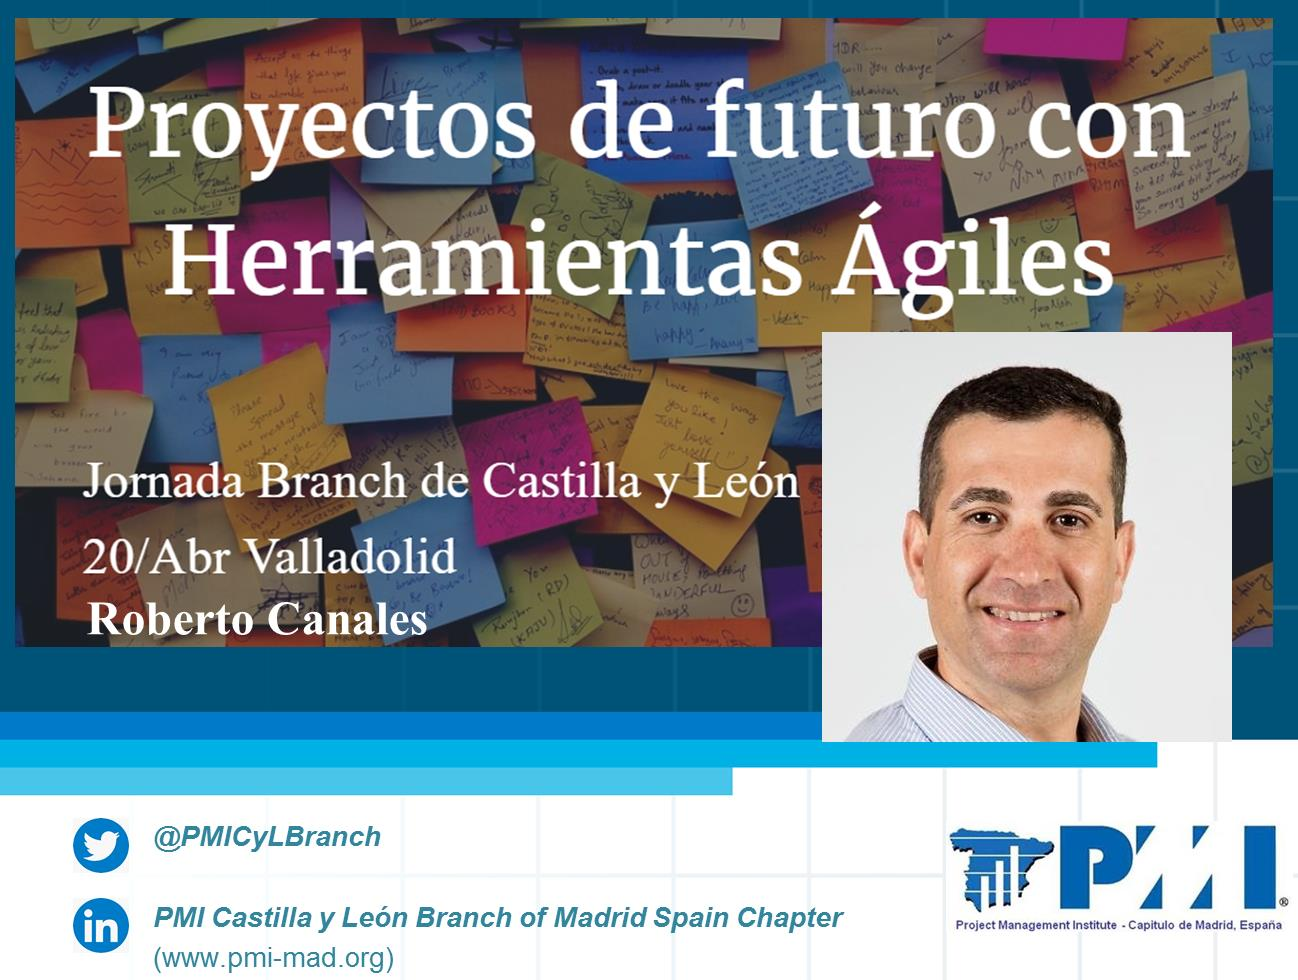 Roberto Canales PMI Branch CyL